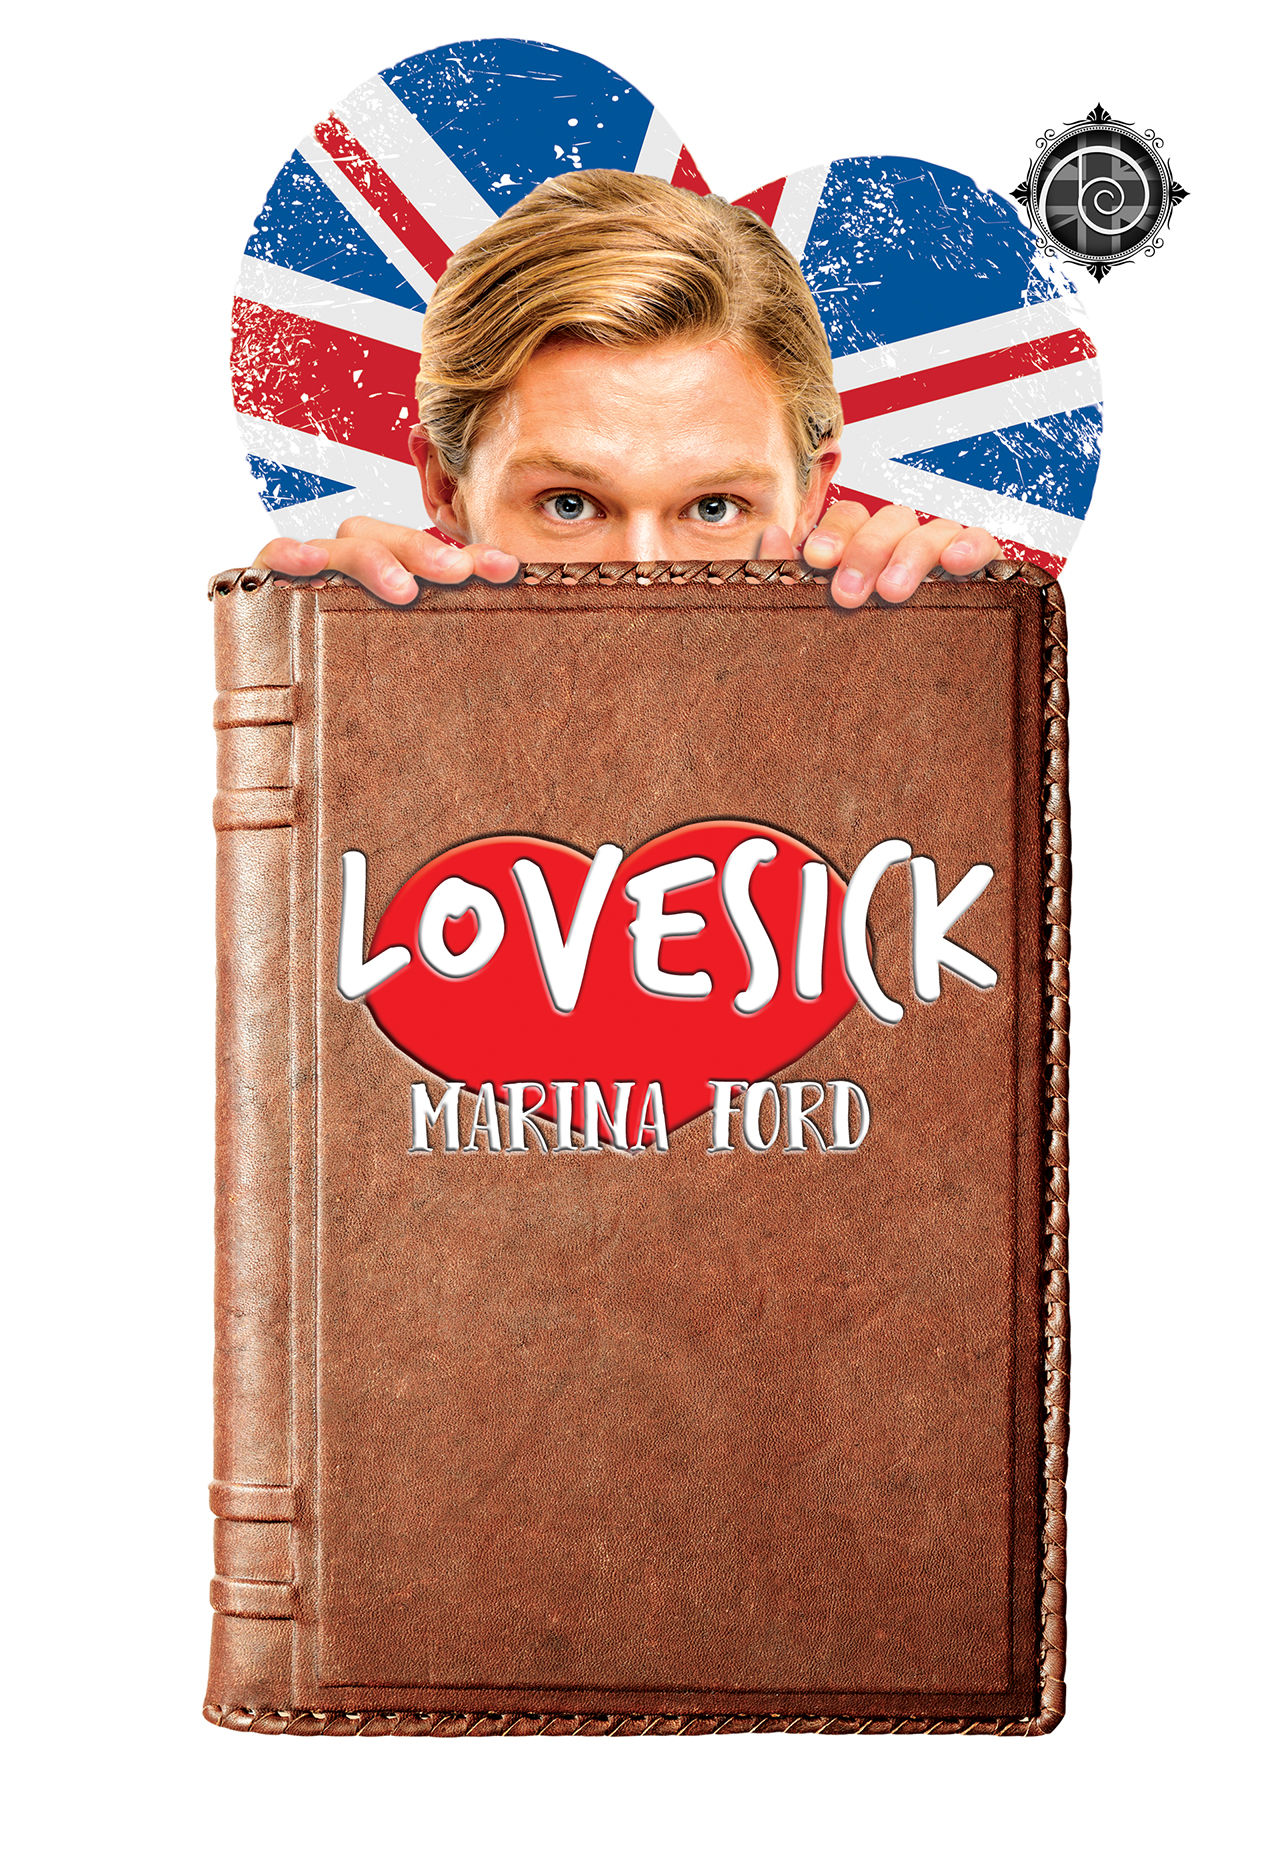 Lovesick by Marina Ford